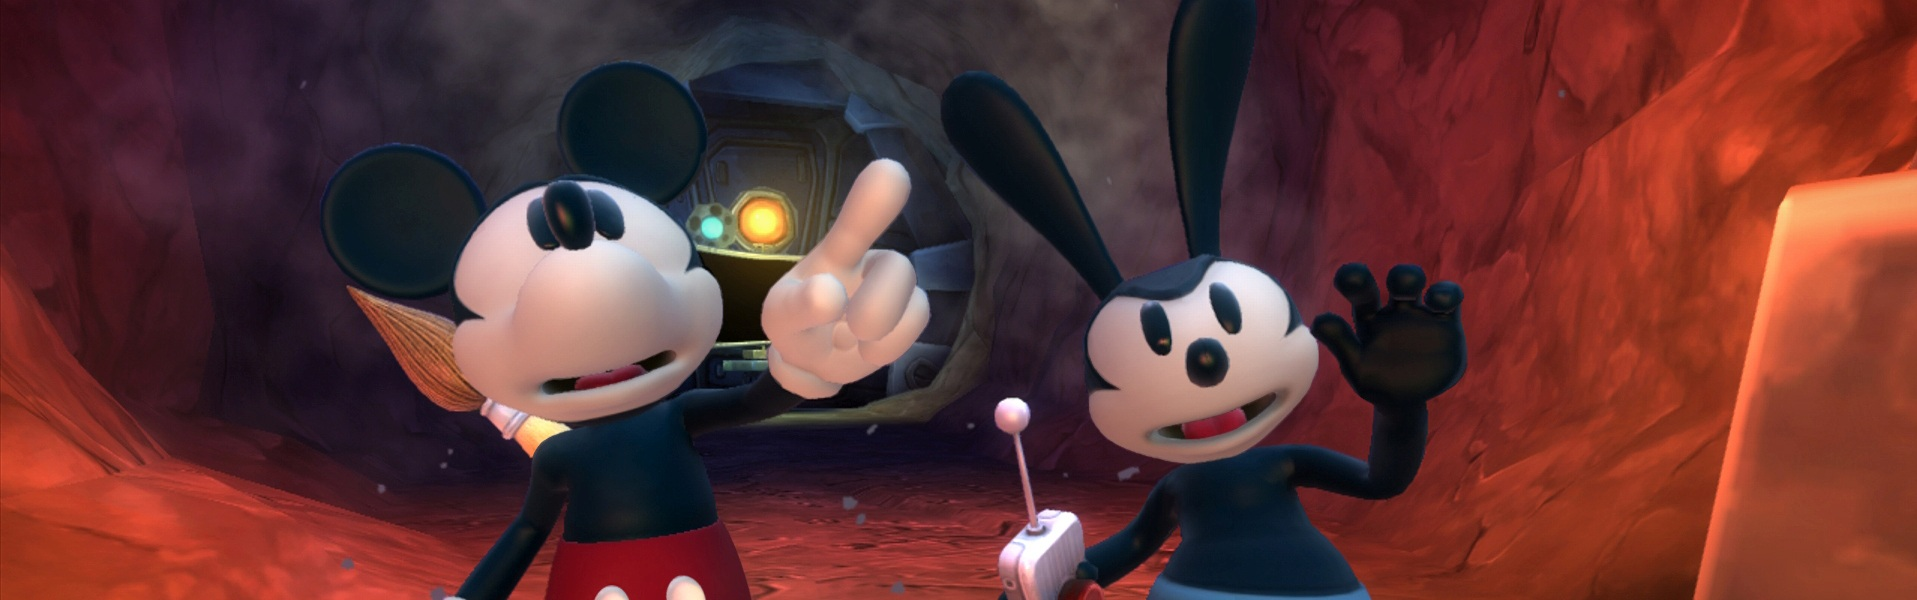 Disney Epic Mickey 2: The Power of Two Steam Key GLOBAL